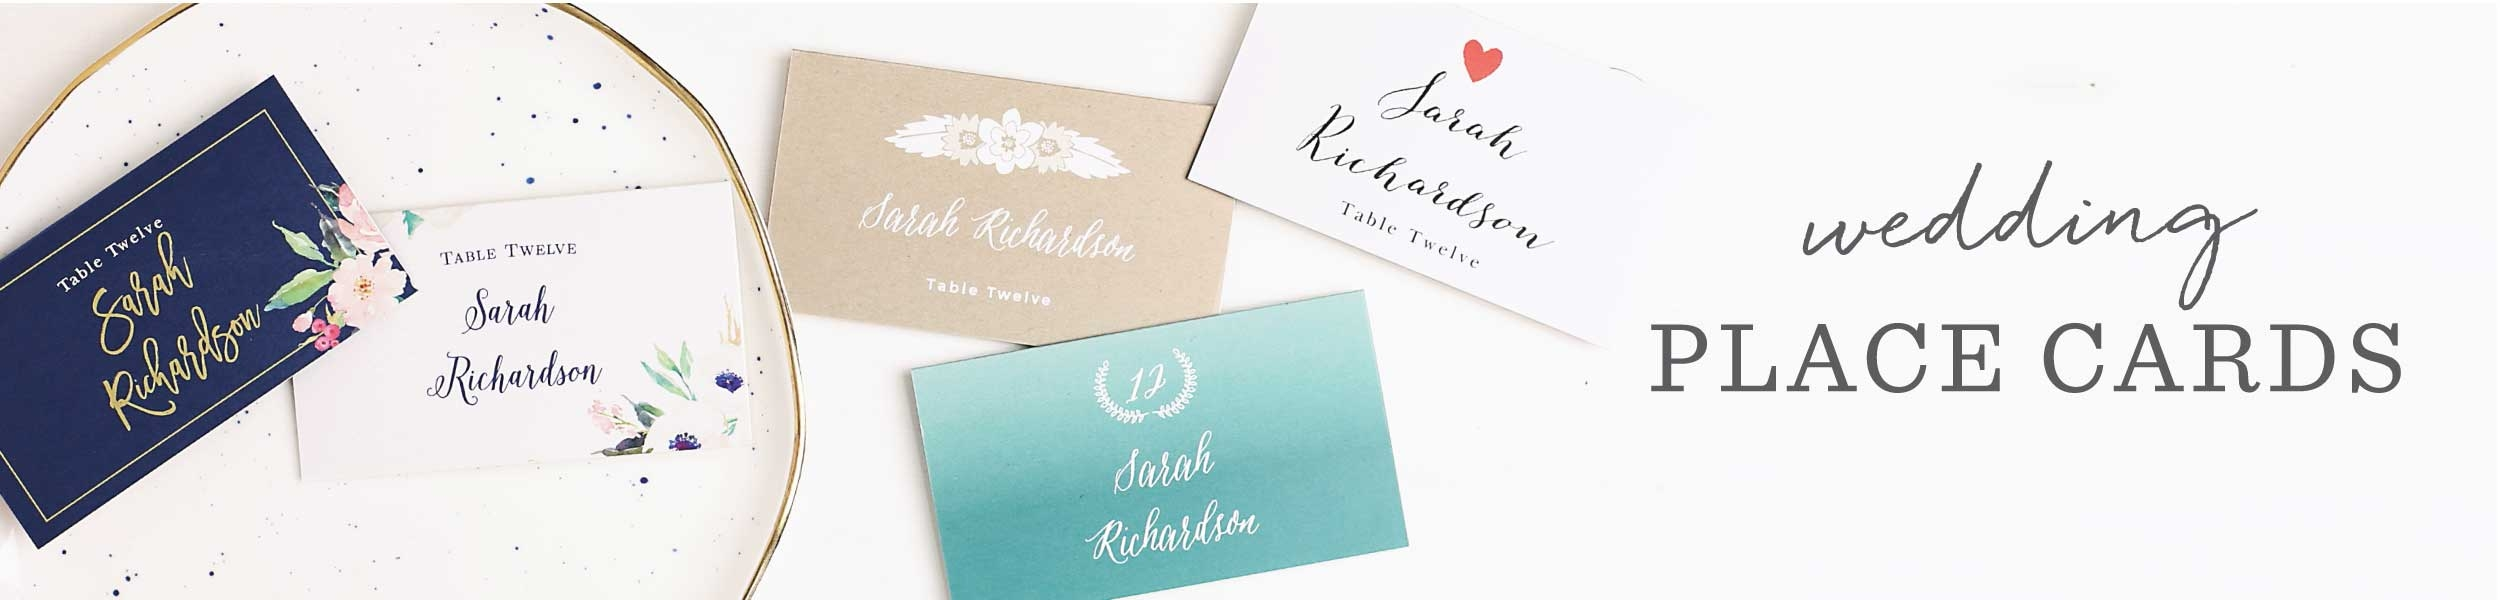 graphic about Printable Wedding Place Cards called Blissful Boughs Vacation spot Playing cards